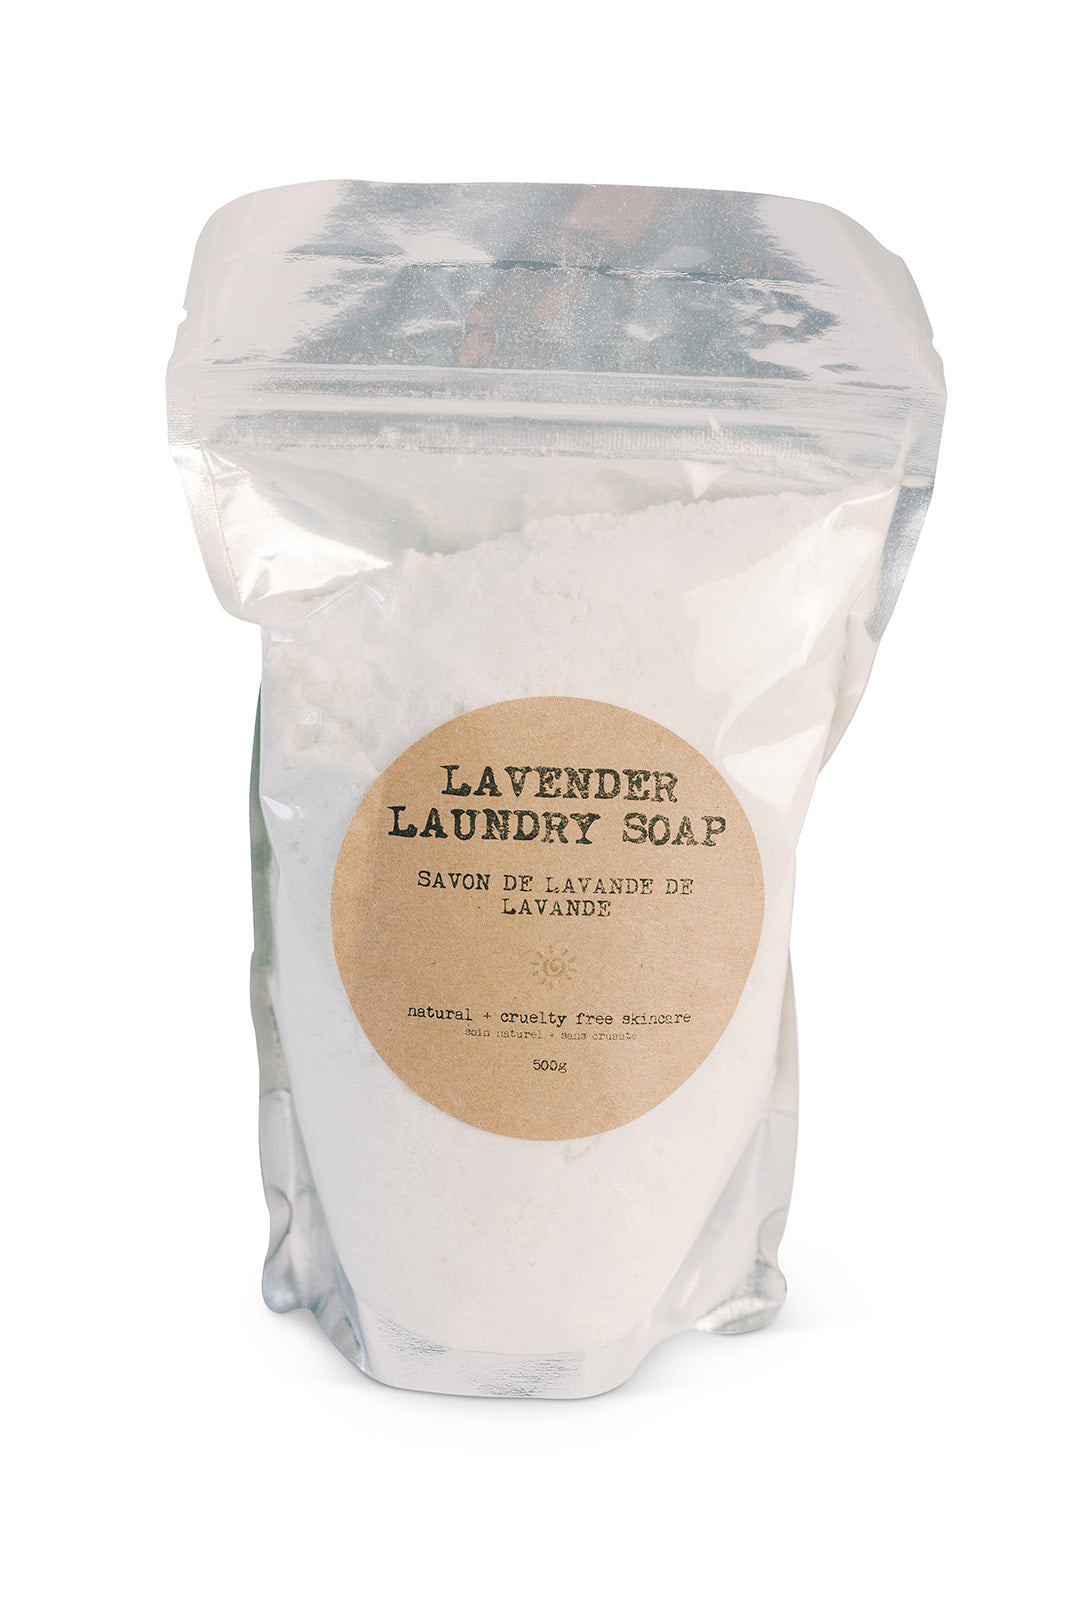 Lavender Laundry Soap